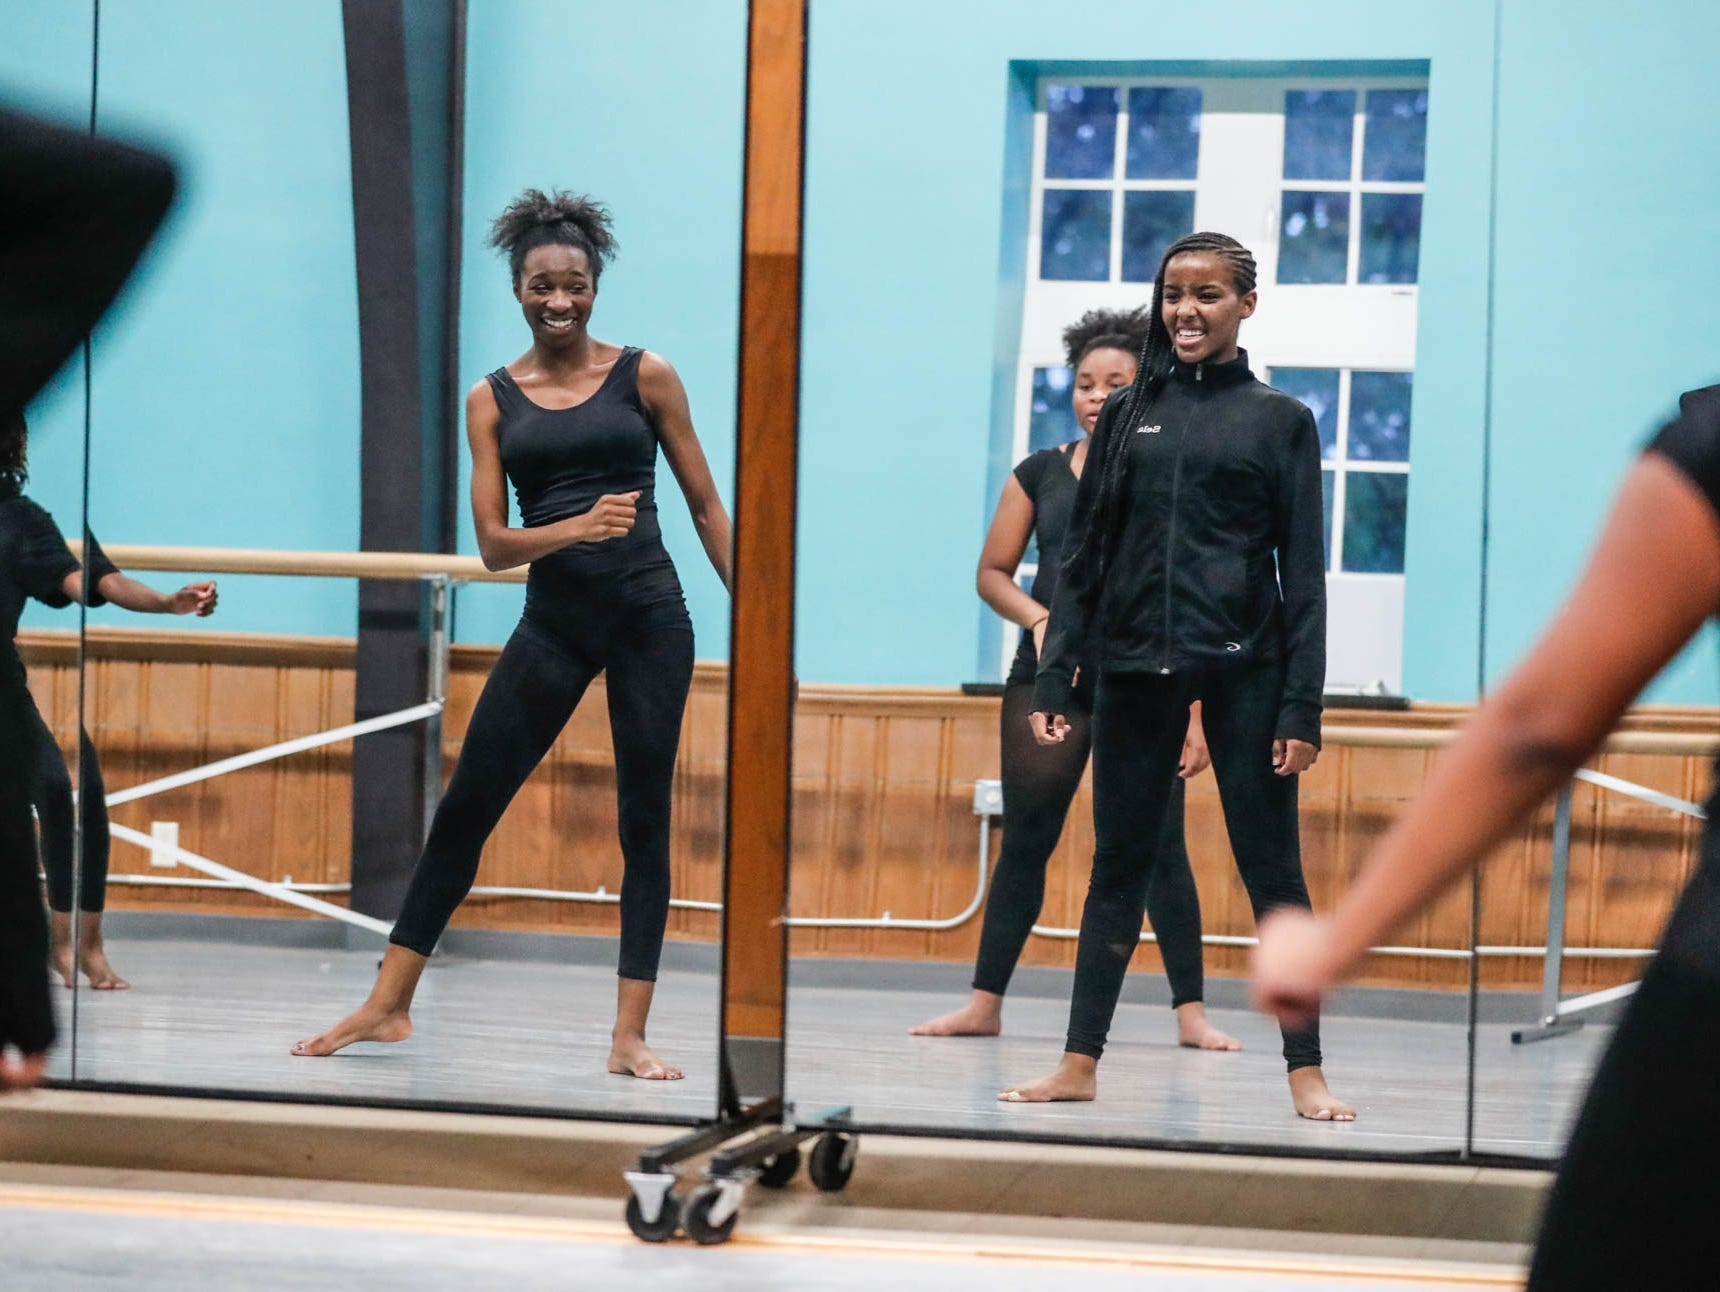 Students Selam Price, left, and Iyannah Eaton, right, watch in the mirror during an libada Dance Company class at Broadway United Methodist Church in Indianapolis Ind. on Wednesday, Oct. 31, 2018. The children's nonprofit dance studio teaches cultural enrichment, discipline, and positive self-esteem through the art of dance.